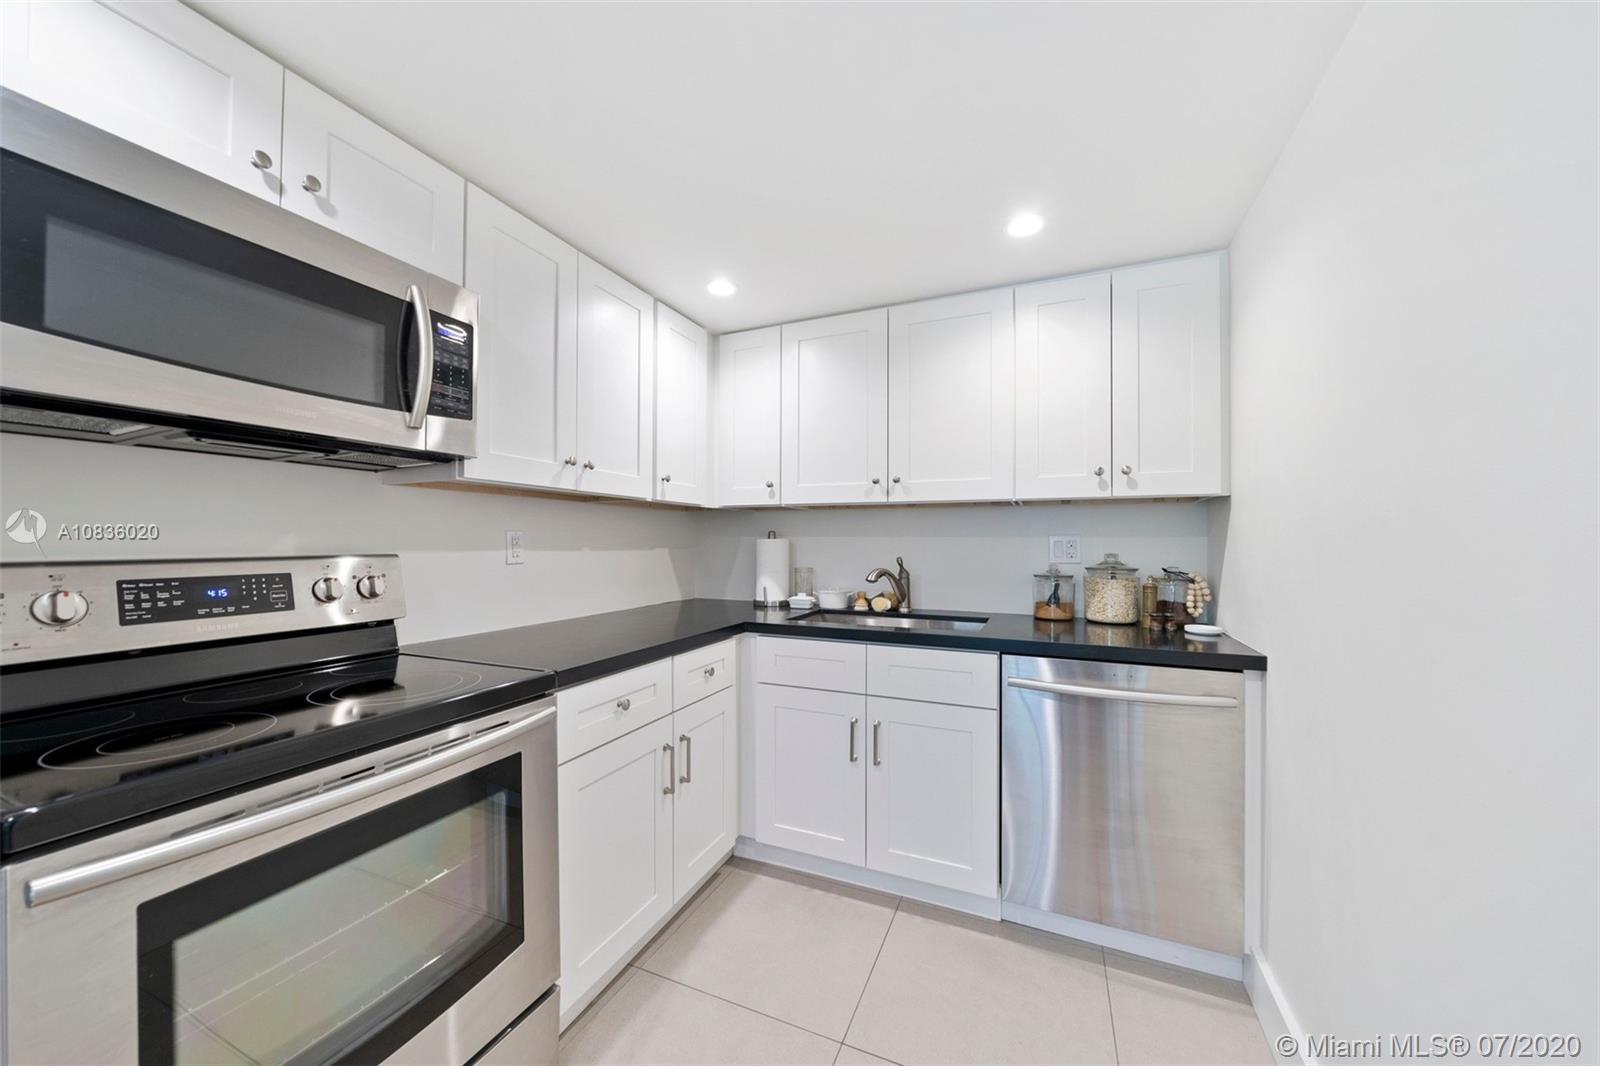 Remodeled, light and bright, perfectly located 1 bedroom/ 1.5 bathroom condo in the City of South Miami. Main level has open living area, brand new kitchen with stainless steel appliances and white cabinetry, half bath and balcony providing lovely treetop views. Fantastic tile flooring. Washer and dryer in unit. New AC. Upstairs you will find a generously sized suite with sitting area, dressing area and renovated bath, two closets., carpet flooring. Gated, assigned parking space. Secure entry to building. Fantastic walkability; less than two blocks to the shops and restaurants of South Miami.